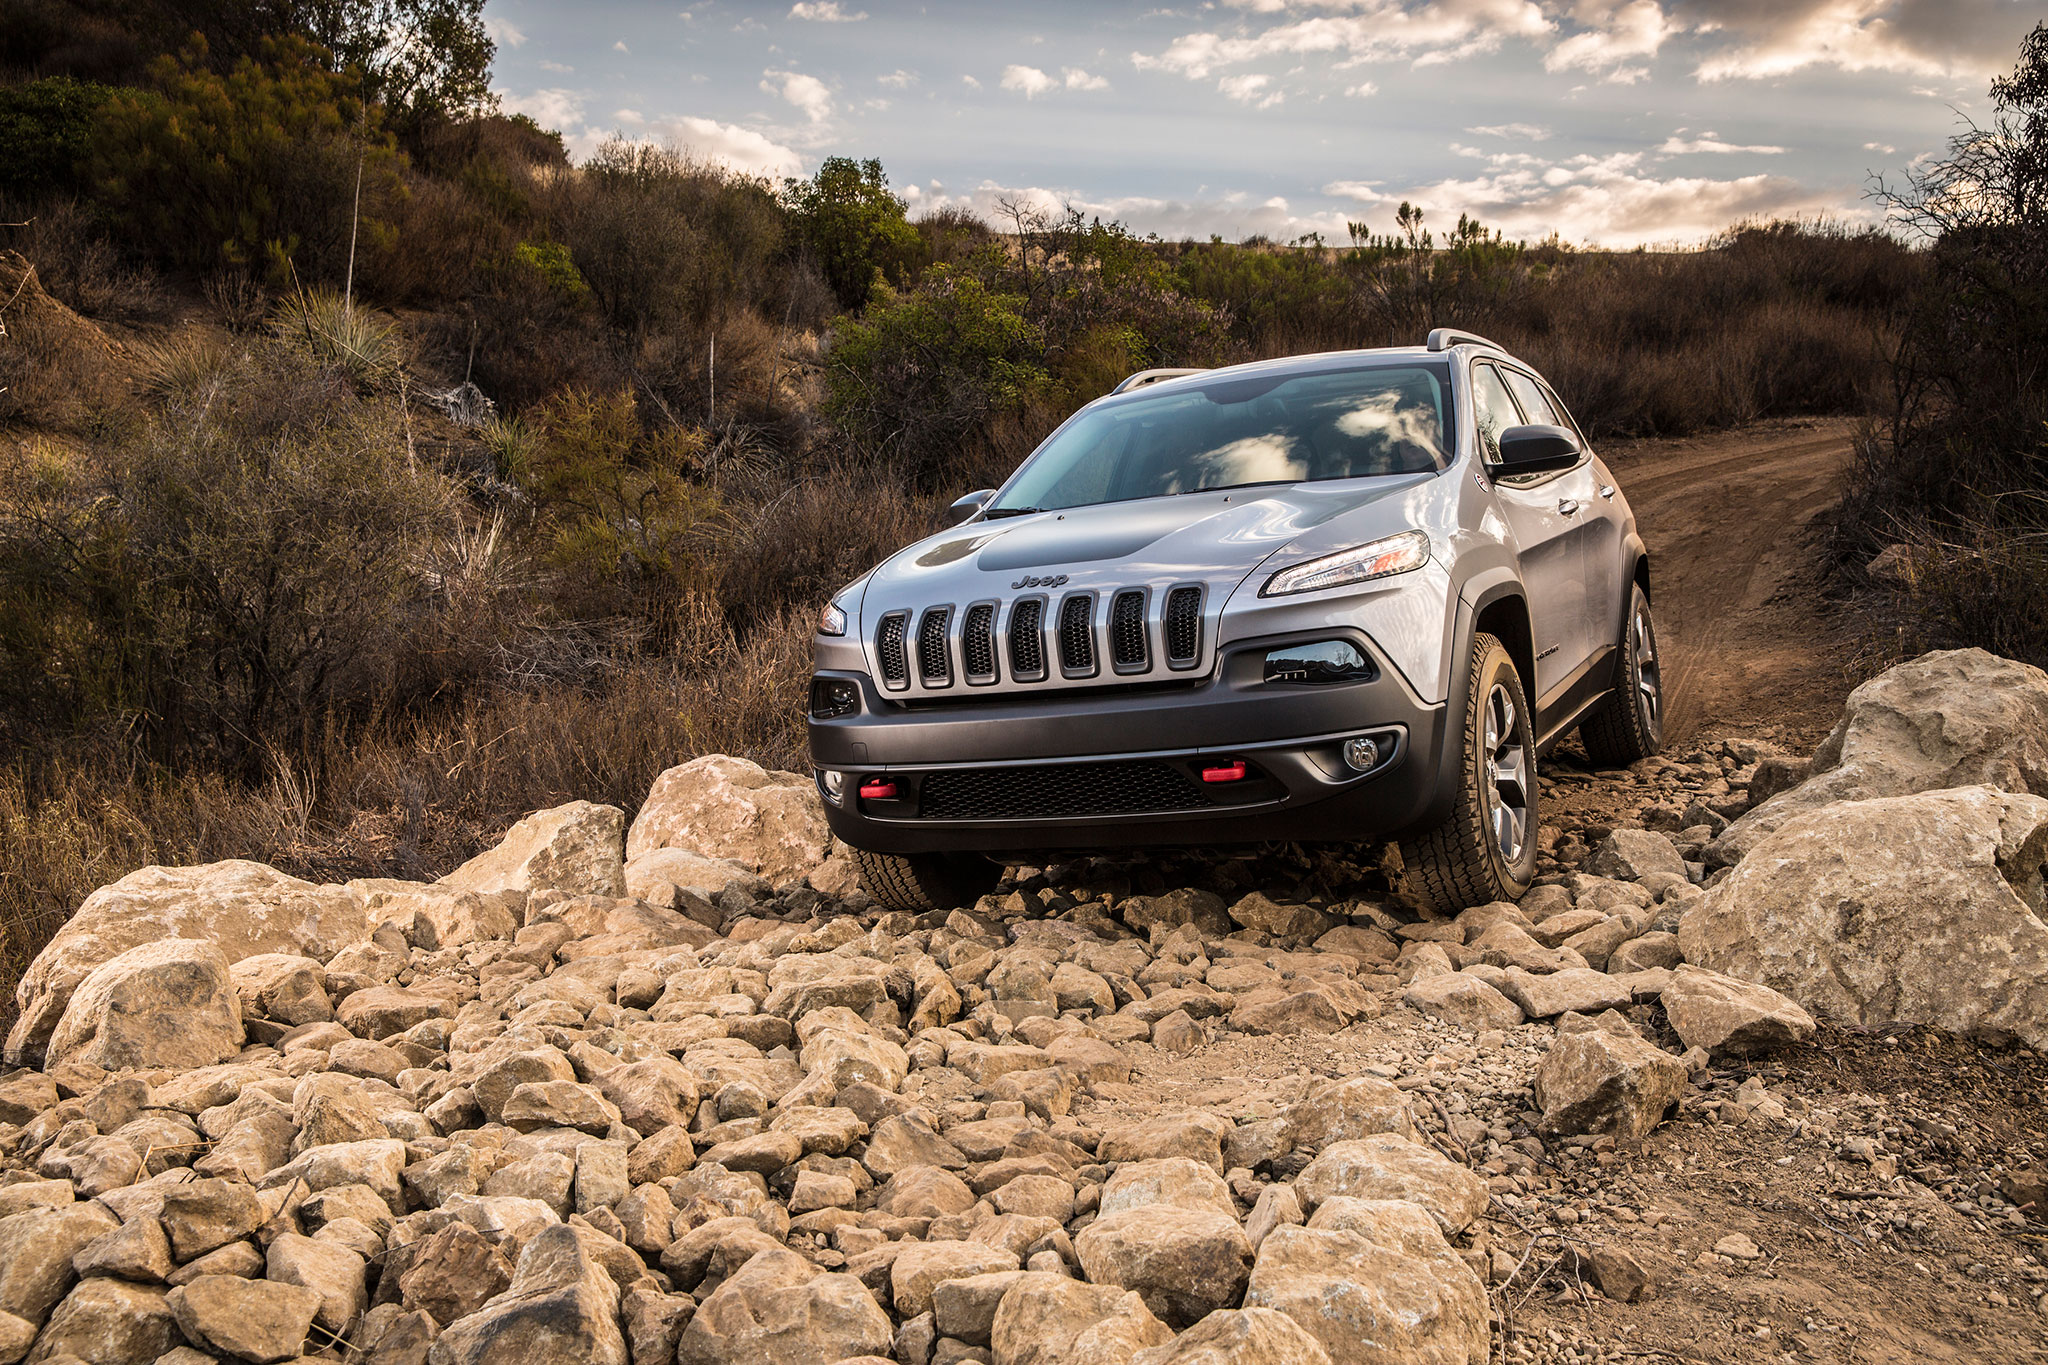 2014 Jeep Cherokee TrailHawk Front Three Quarters Offroad1